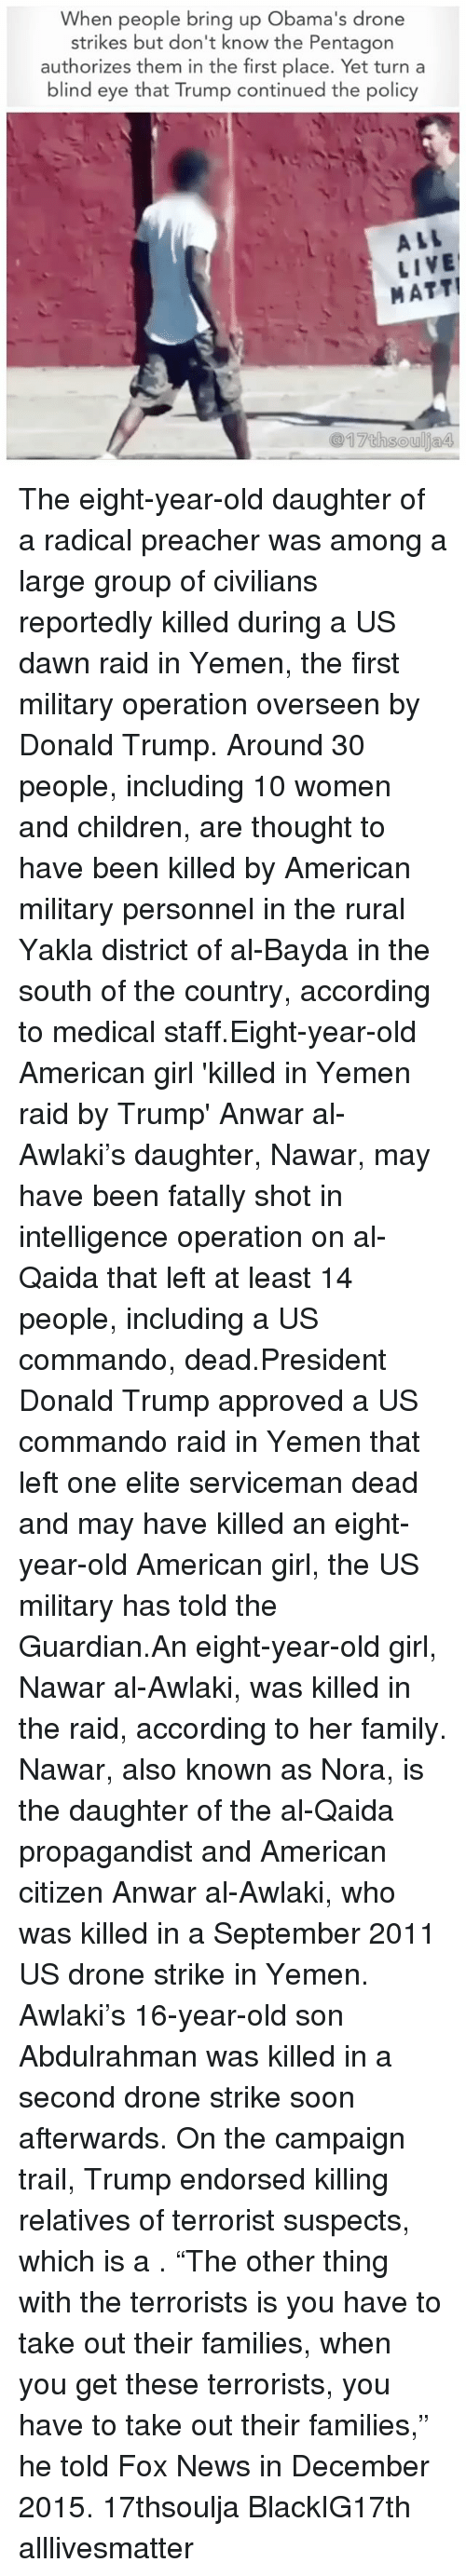 """Crime, Drone, and Memes: When people bring up Obama's drone  strikes but don't know the Pentagon  authorizes them in the first place. Yet turn a  blind eye that Trump continued the policy  ALL  LIVE  MATT! The eight-year-old daughter of a radical preacher was among a large group of civilians reportedly killed during a US dawn raid in Yemen, the first military operation overseen by Donald Trump. Around 30 people, including 10 women and children, are thought to have been killed by American military personnel in the rural Yakla district of al-Bayda in the south of the country, according to medical staff.Eight-year-old American girl 'killed in Yemen raid <approved >by Trump' Anwar al-Awlaki's daughter, Nawar, may have been fatally shot in intelligence operation on al-Qaida that left at least 14 people, including a US commando, dead.President Donald Trump <personally >approved a US commando raid in Yemen that left one elite serviceman dead and may have killed an eight-year-old American girl, the US military has told the Guardian.An eight-year-old girl, Nawar al-Awlaki, was killed in the raid, according to her family. Nawar, also known as Nora, is the daughter of the al-Qaida propagandist and American citizen Anwar al-Awlaki, who was killed in a September 2011 US drone strike in Yemen. Awlaki's 16-year-old son Abdulrahman was killed in a second drone strike soon afterwards. On the campaign trail, Trump endorsed killing relatives of terrorist suspects, which is a <war crime>. """"The other thing with the terrorists is you have to take out their families, when you get these terrorists, you have to take out their families,"""" he told Fox News in December 2015. 17thsoulja BlackIG17th alllivesmatter"""